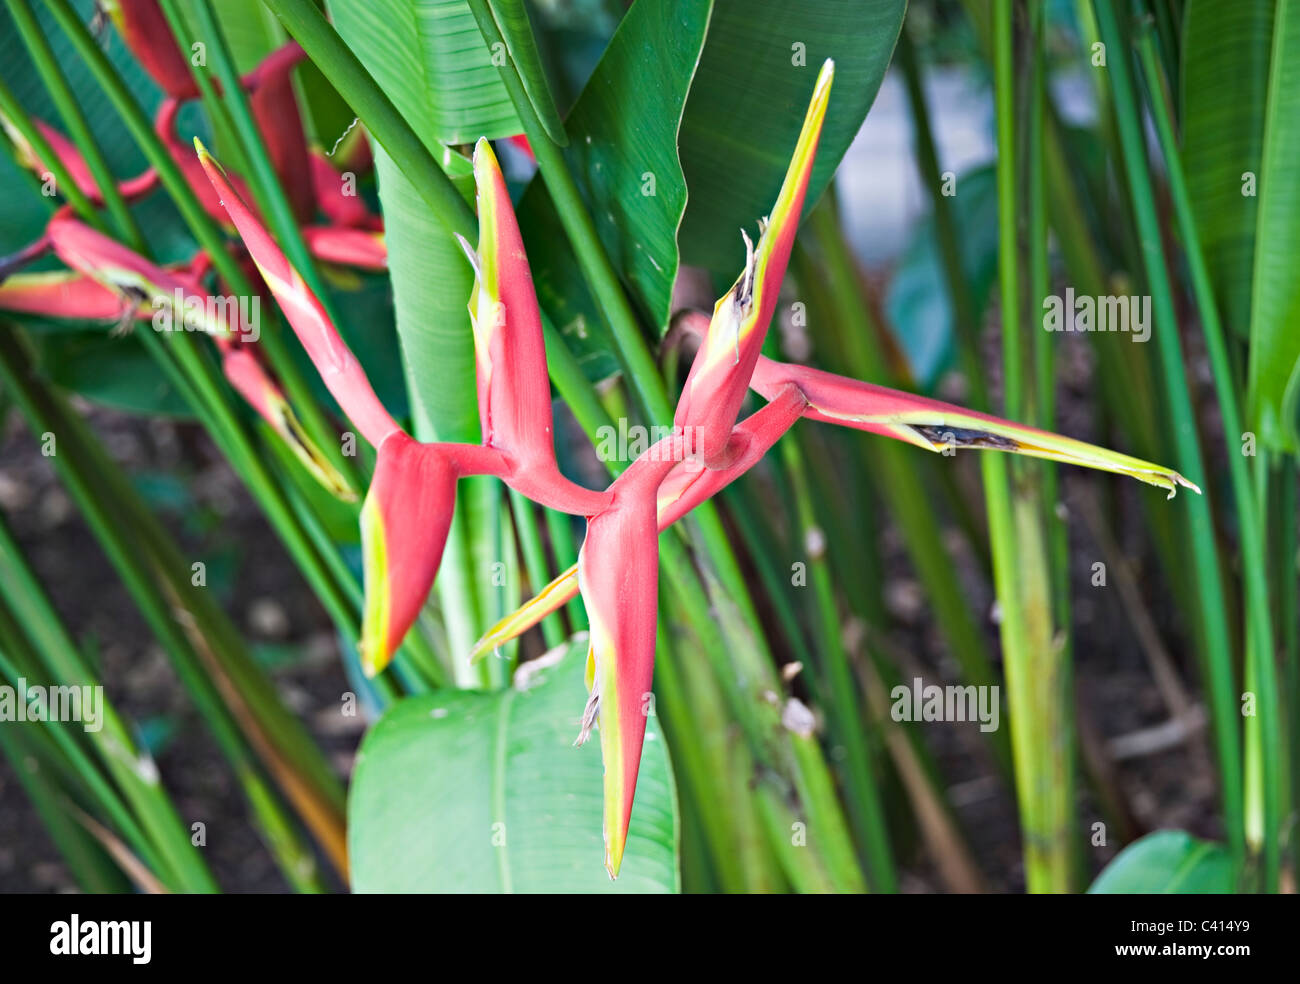 Red and Yellow Heliconia Rauliniana Flower Growing in The Botanic Gardens Singapore Republic of Singapore Asia - Stock Image